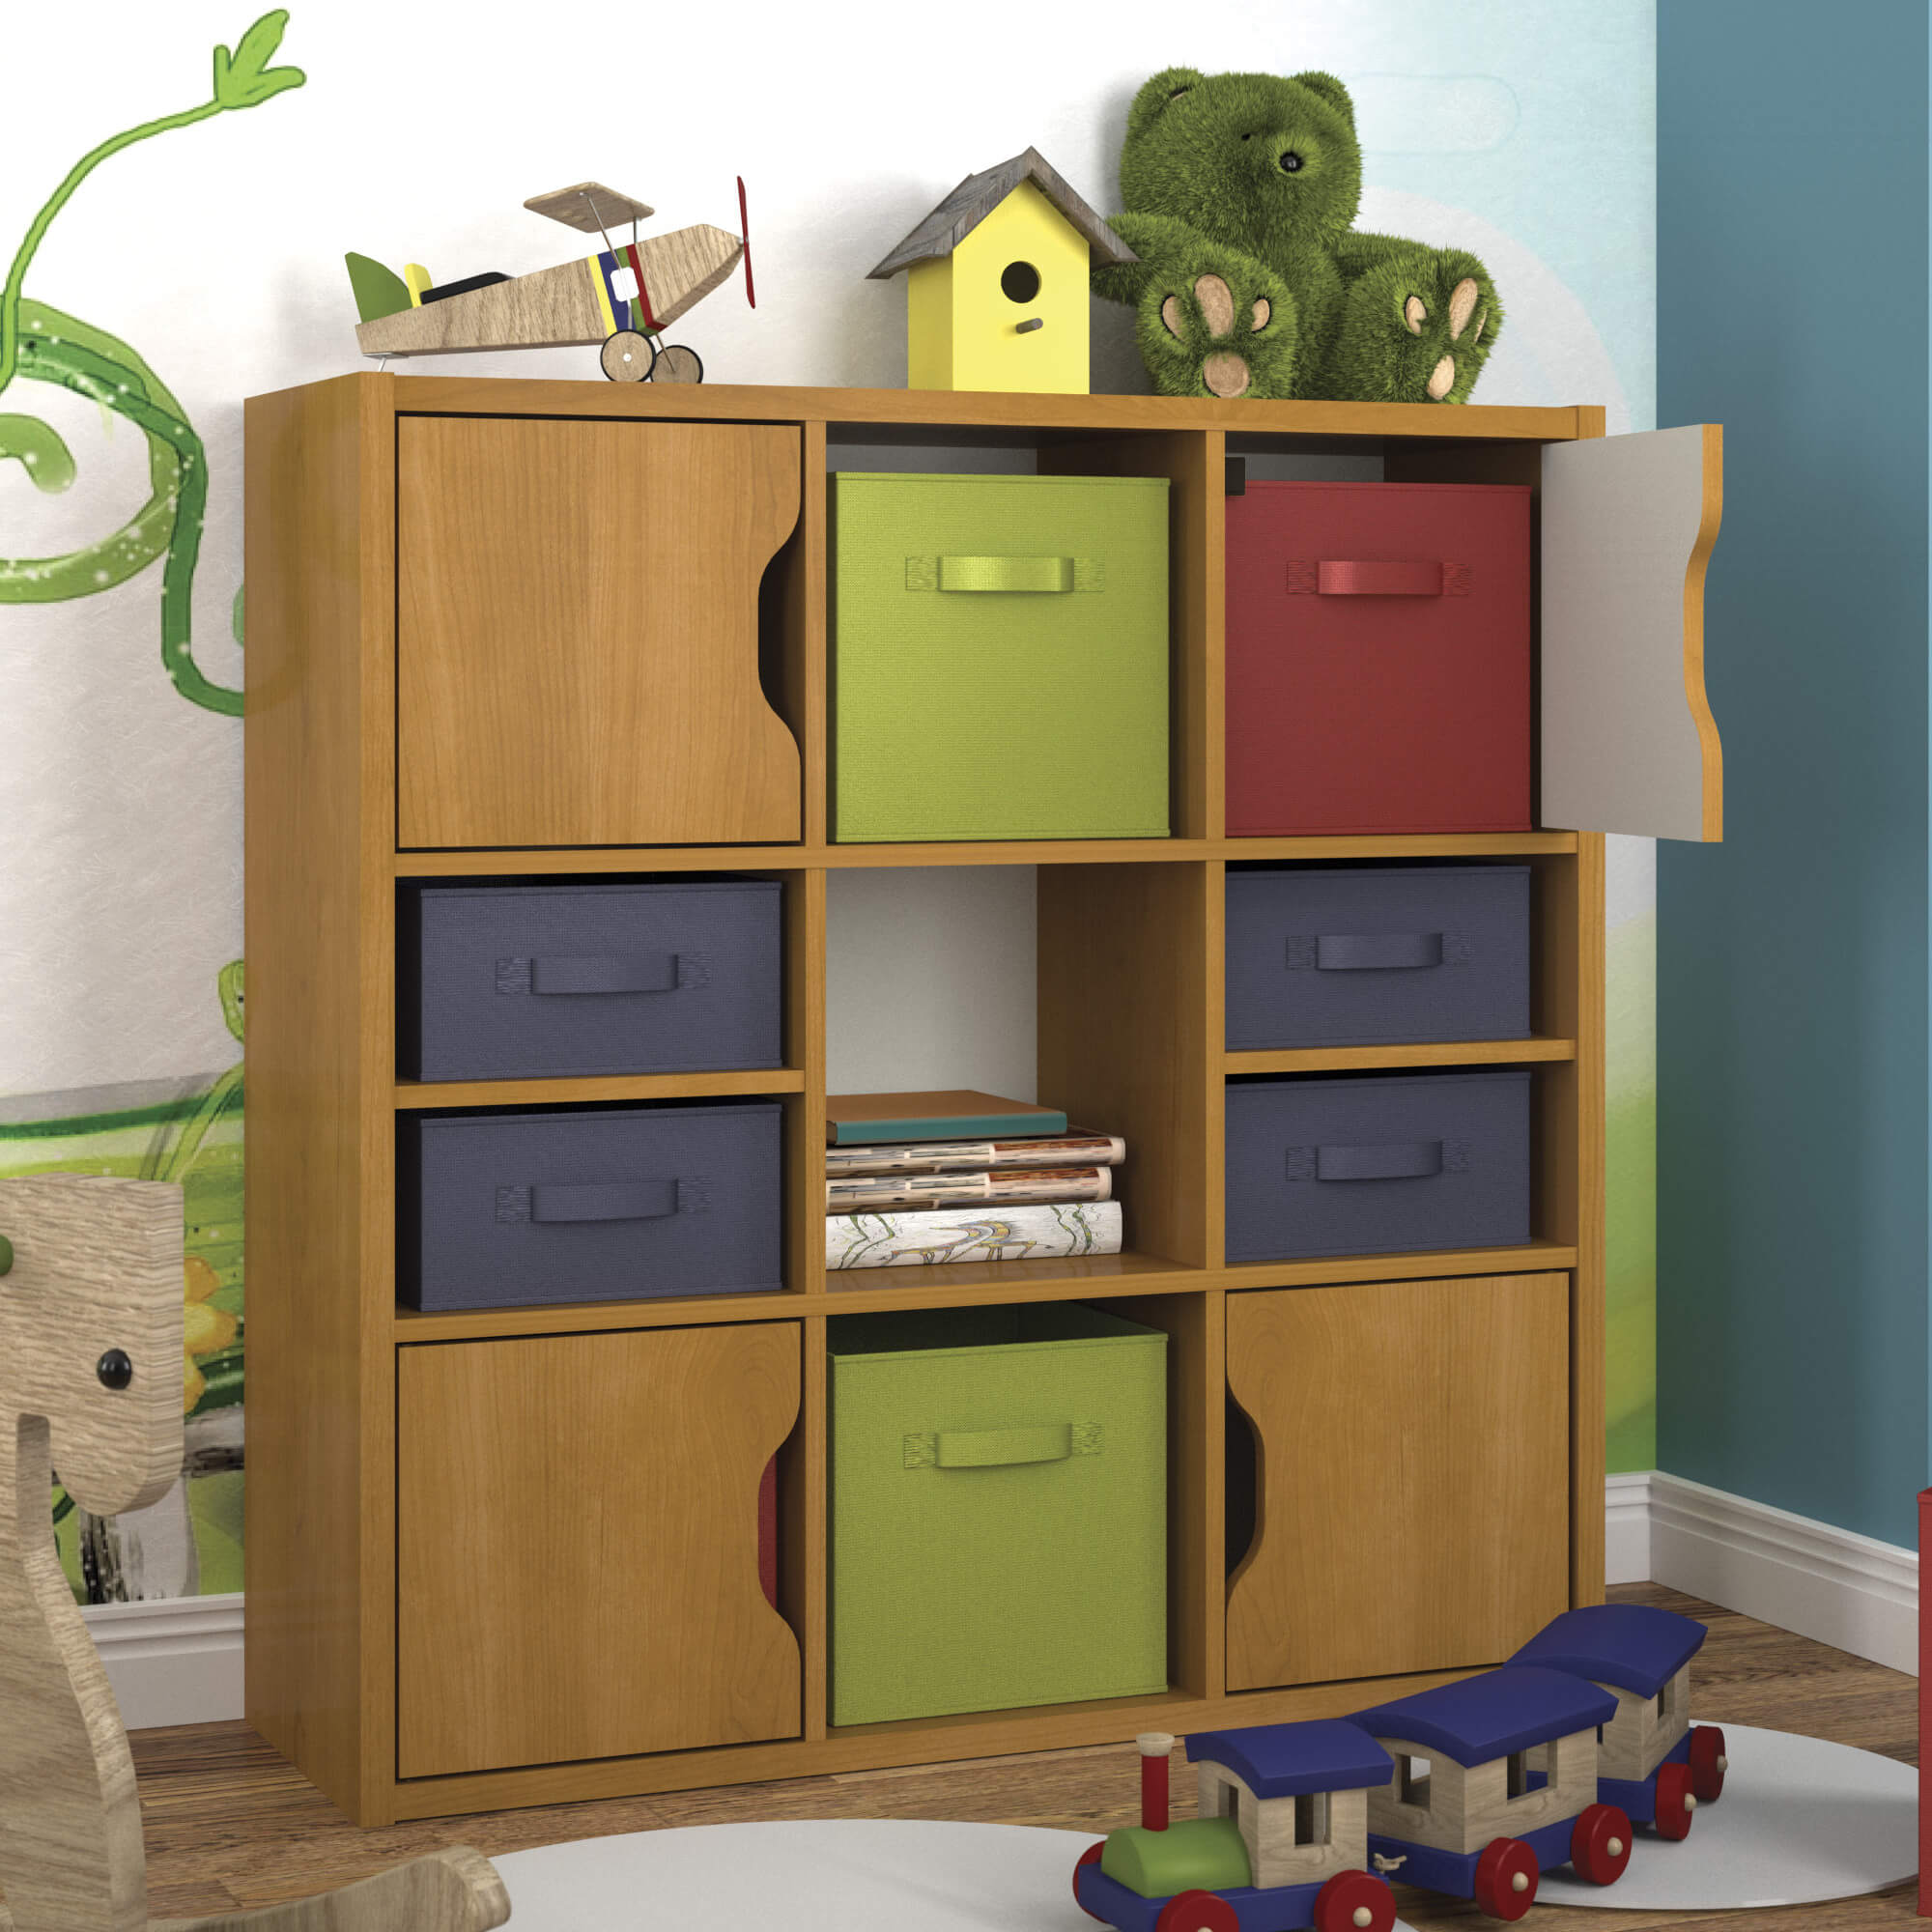 Here's another 9-cube shelf using colorful drawer inserts creating a fun shelving unit perfect for a kid's bedroom.